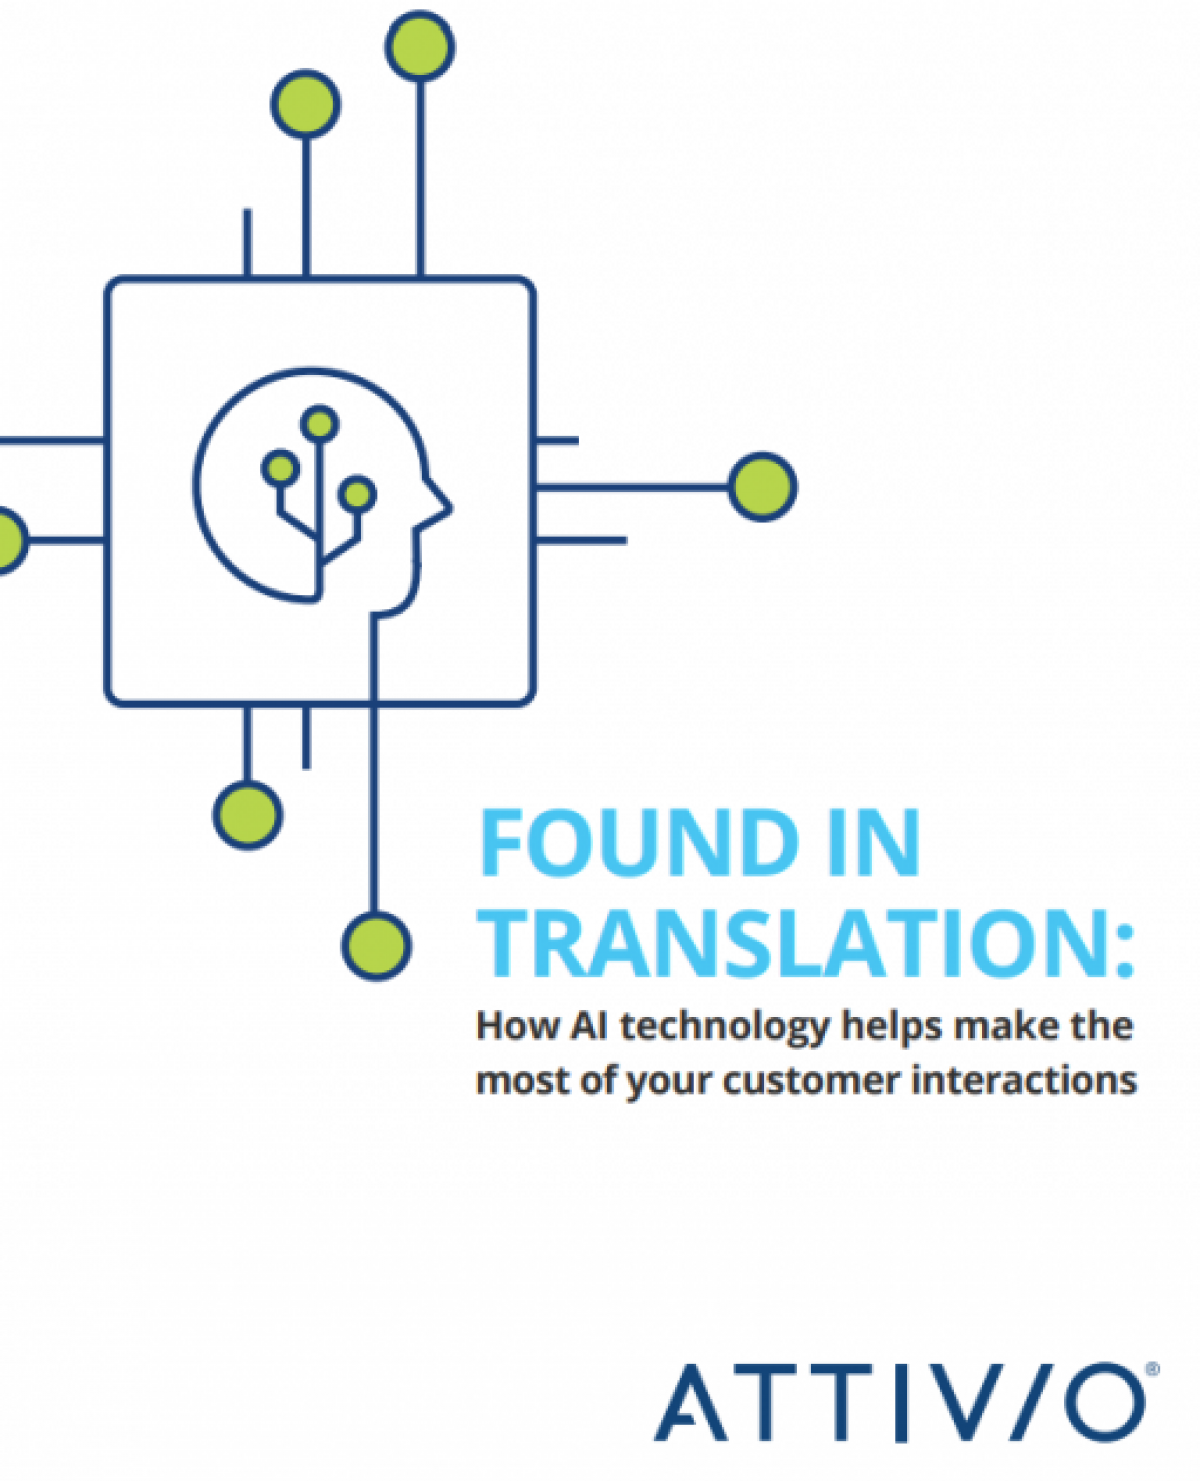 Found In Translation: How AI Technology Helps Make the Most of Your Customer Interactions